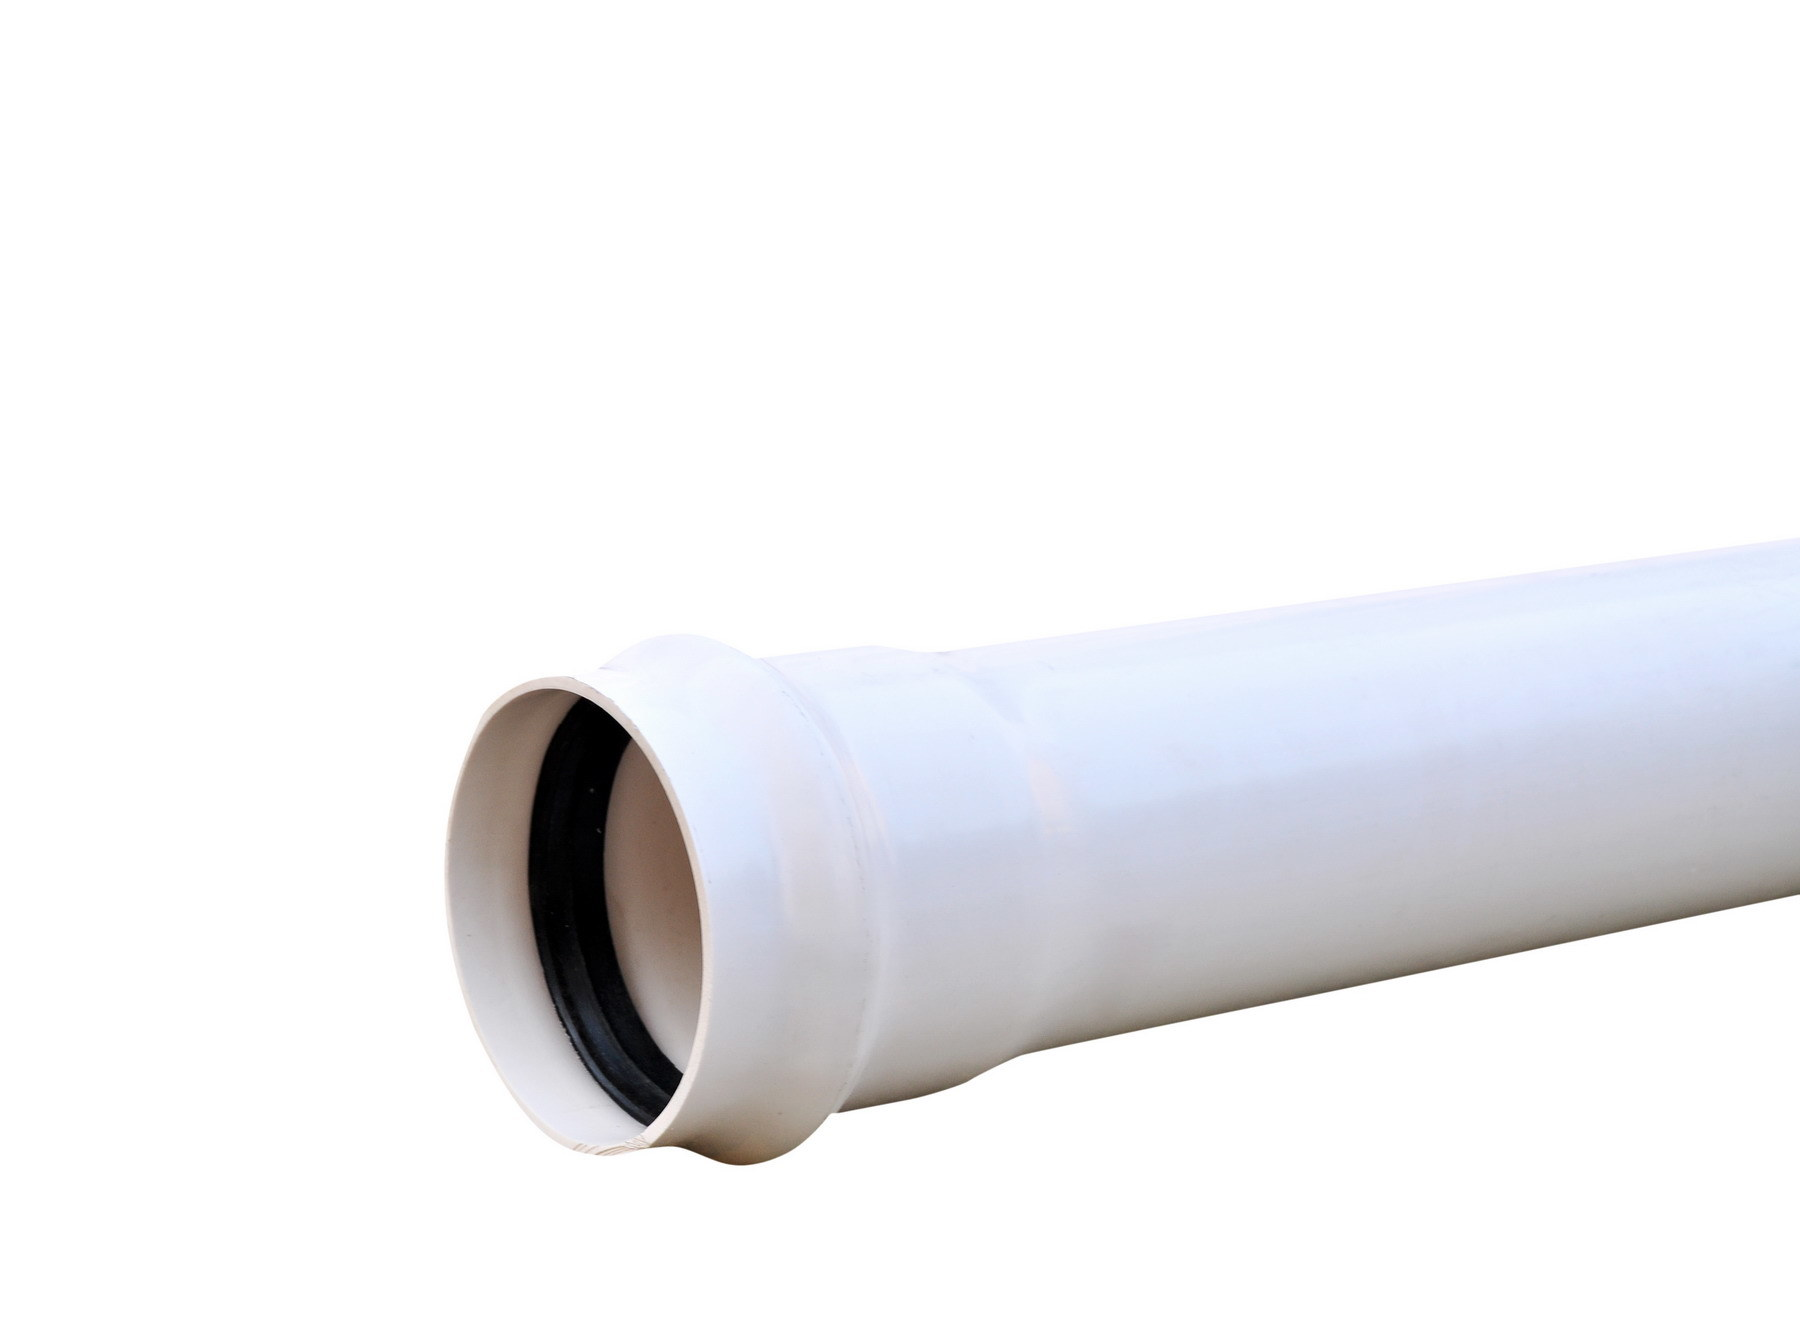 Pvc Pipe Gaskets Bing Images